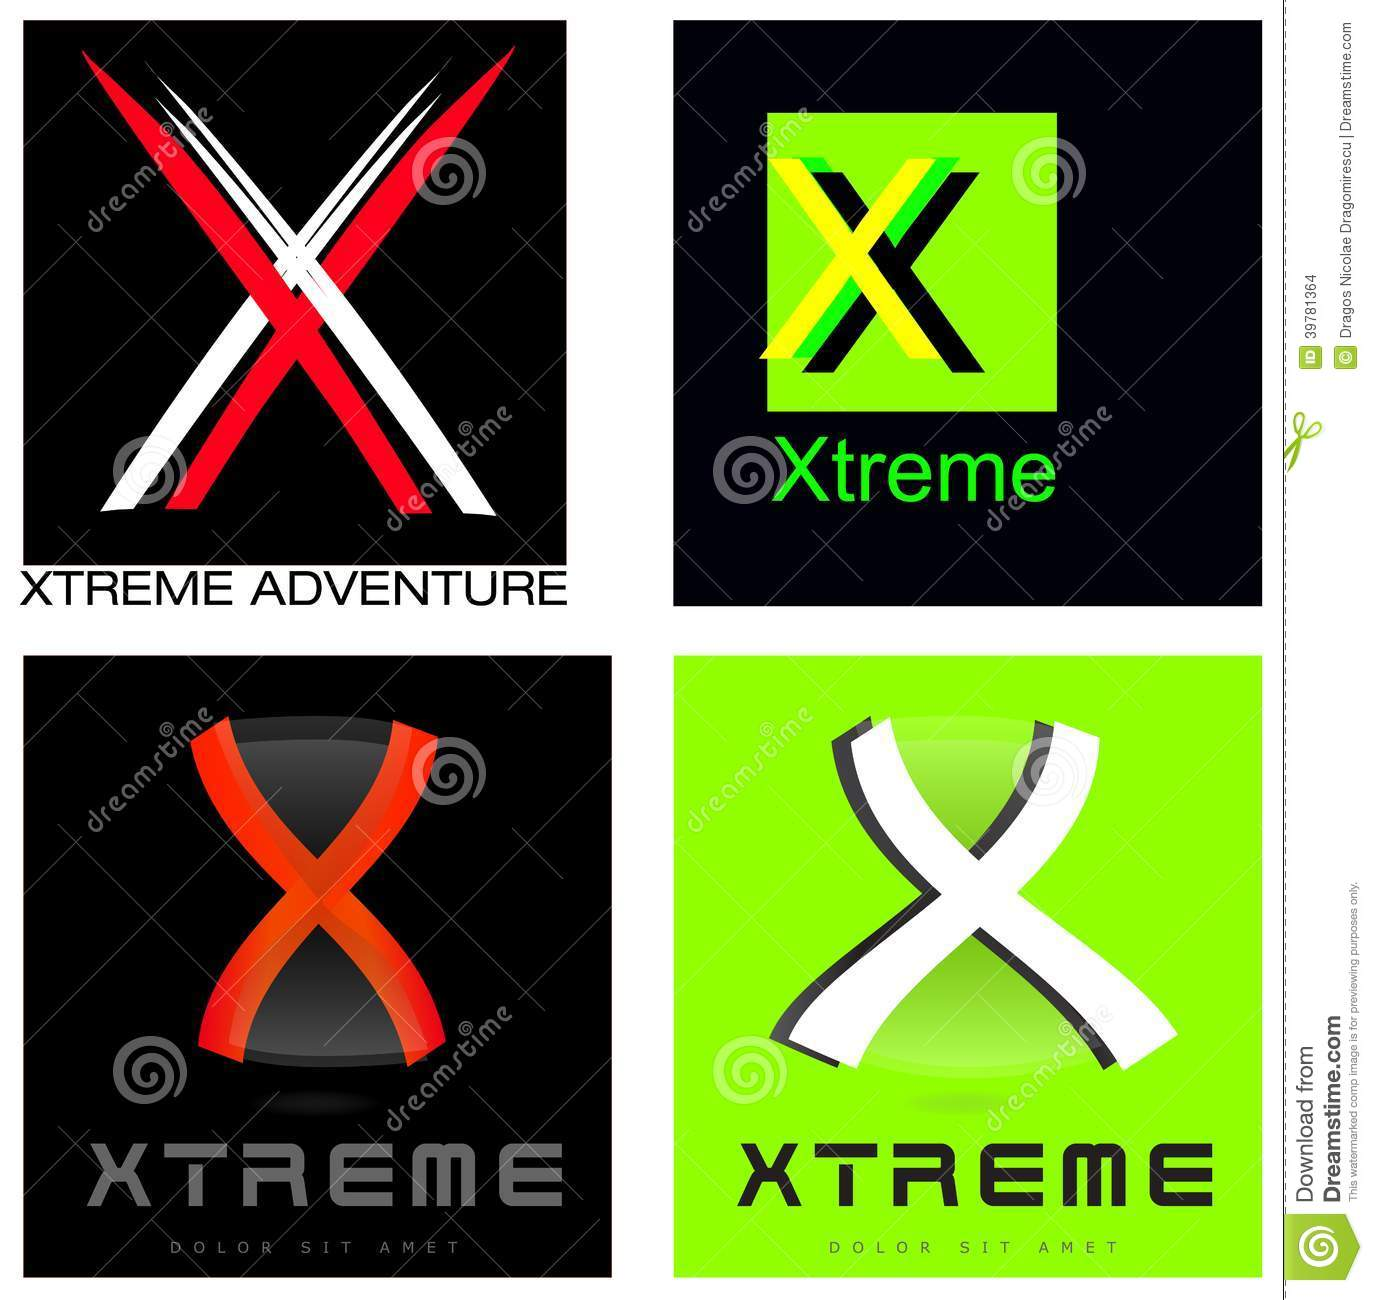 xtreme or letter x company logo set stock illustration